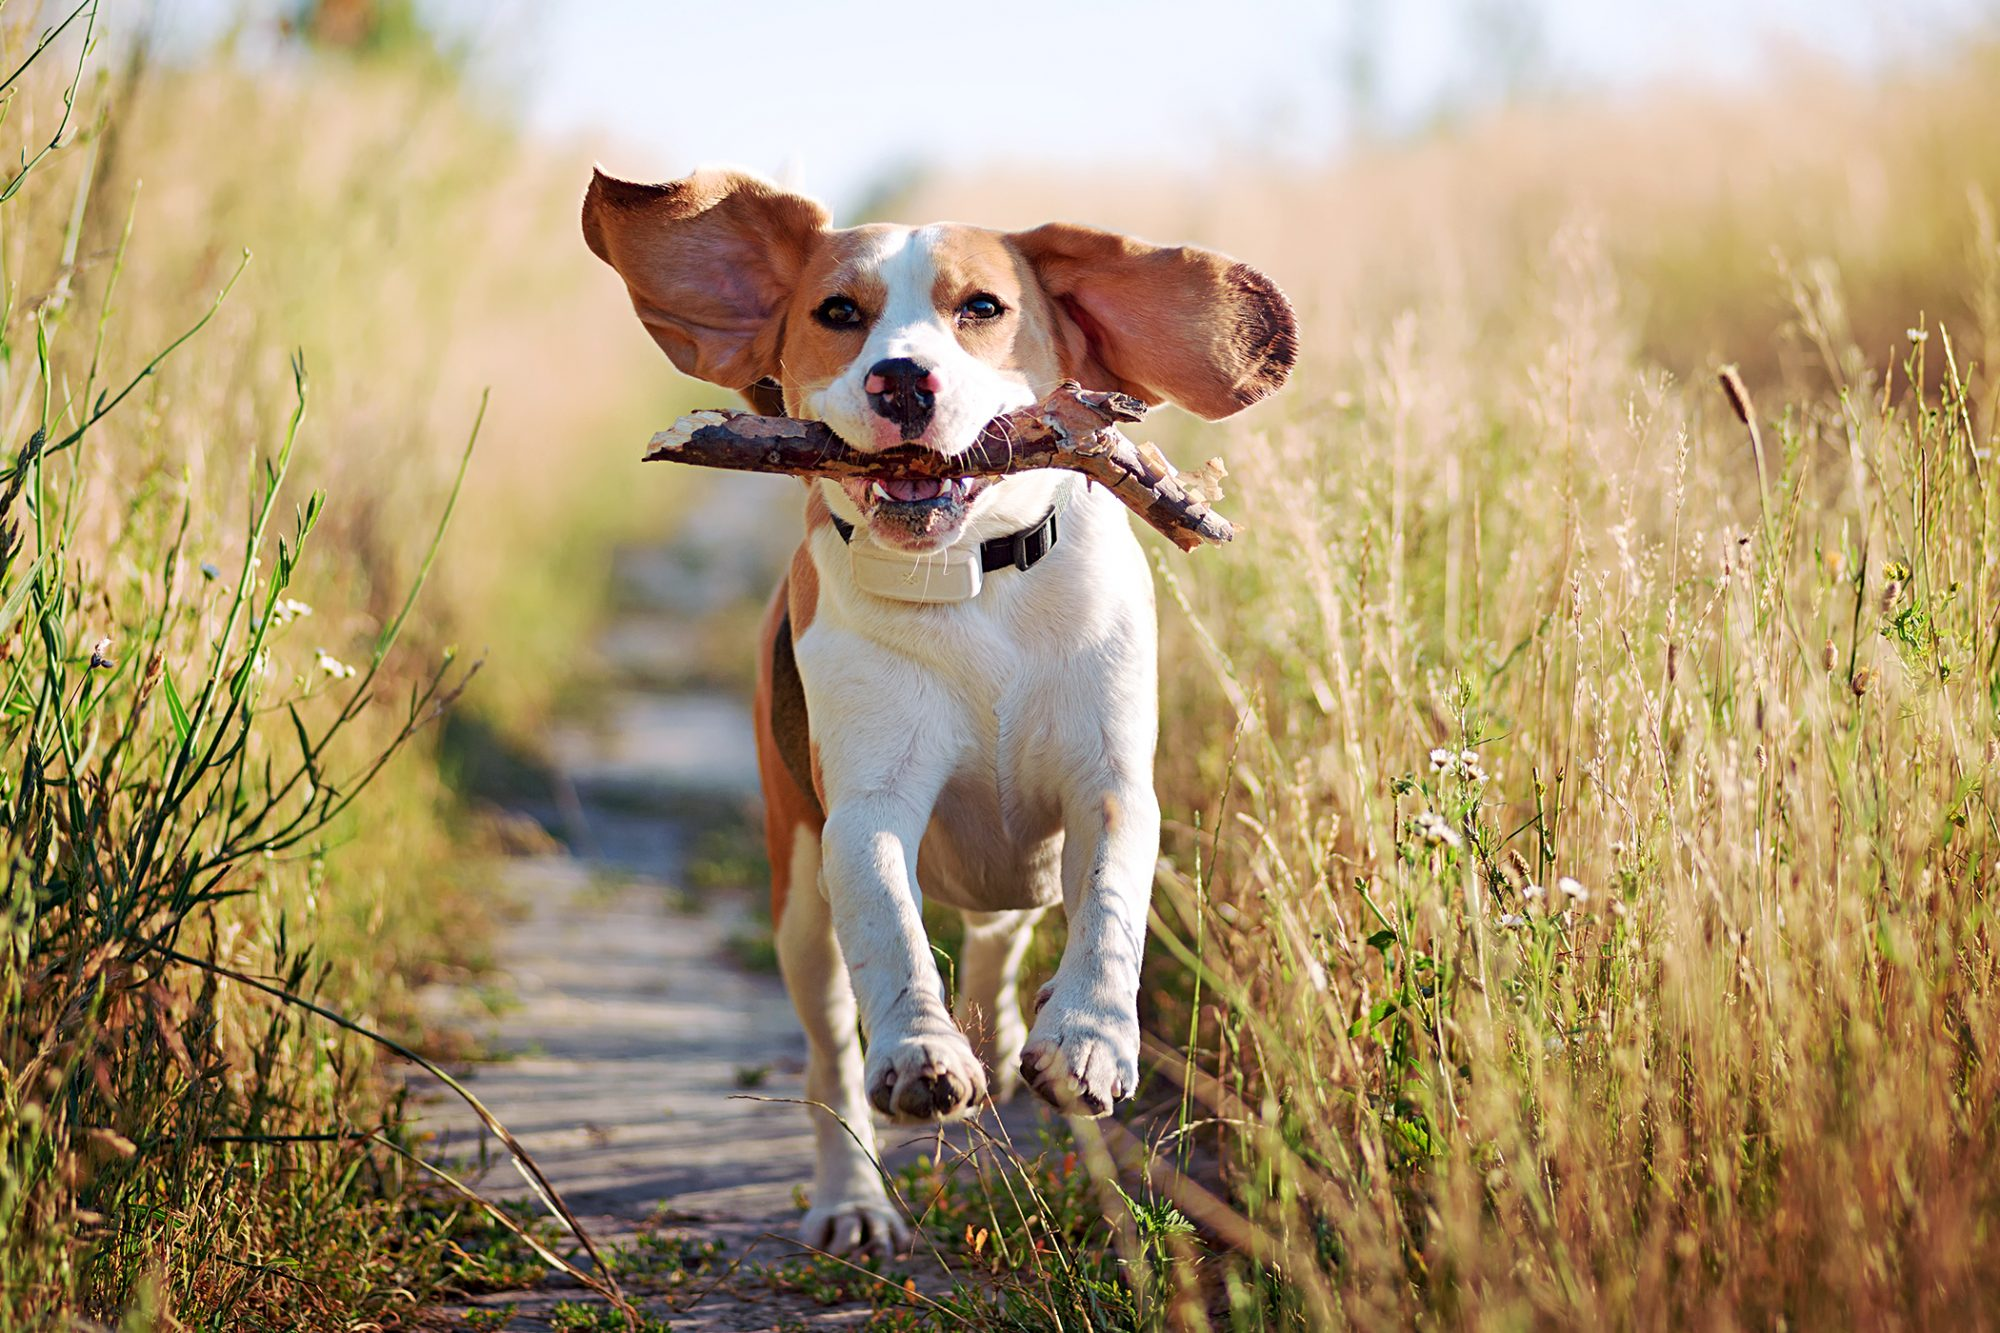 Beagle runs on prairie path while holding stick in mouth